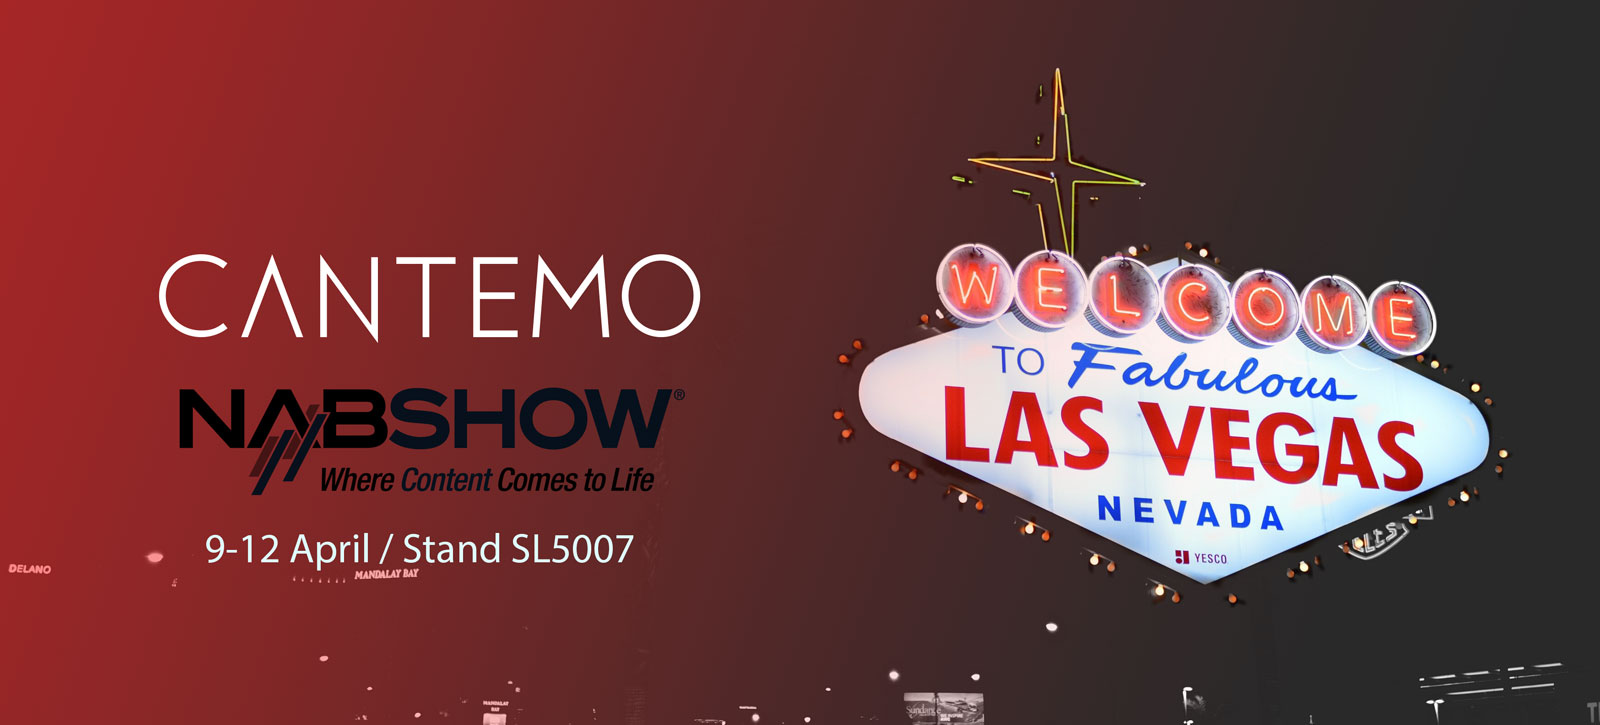 image from Cantemo to Showcase Video Intelligence for Media Management at NAB 2018